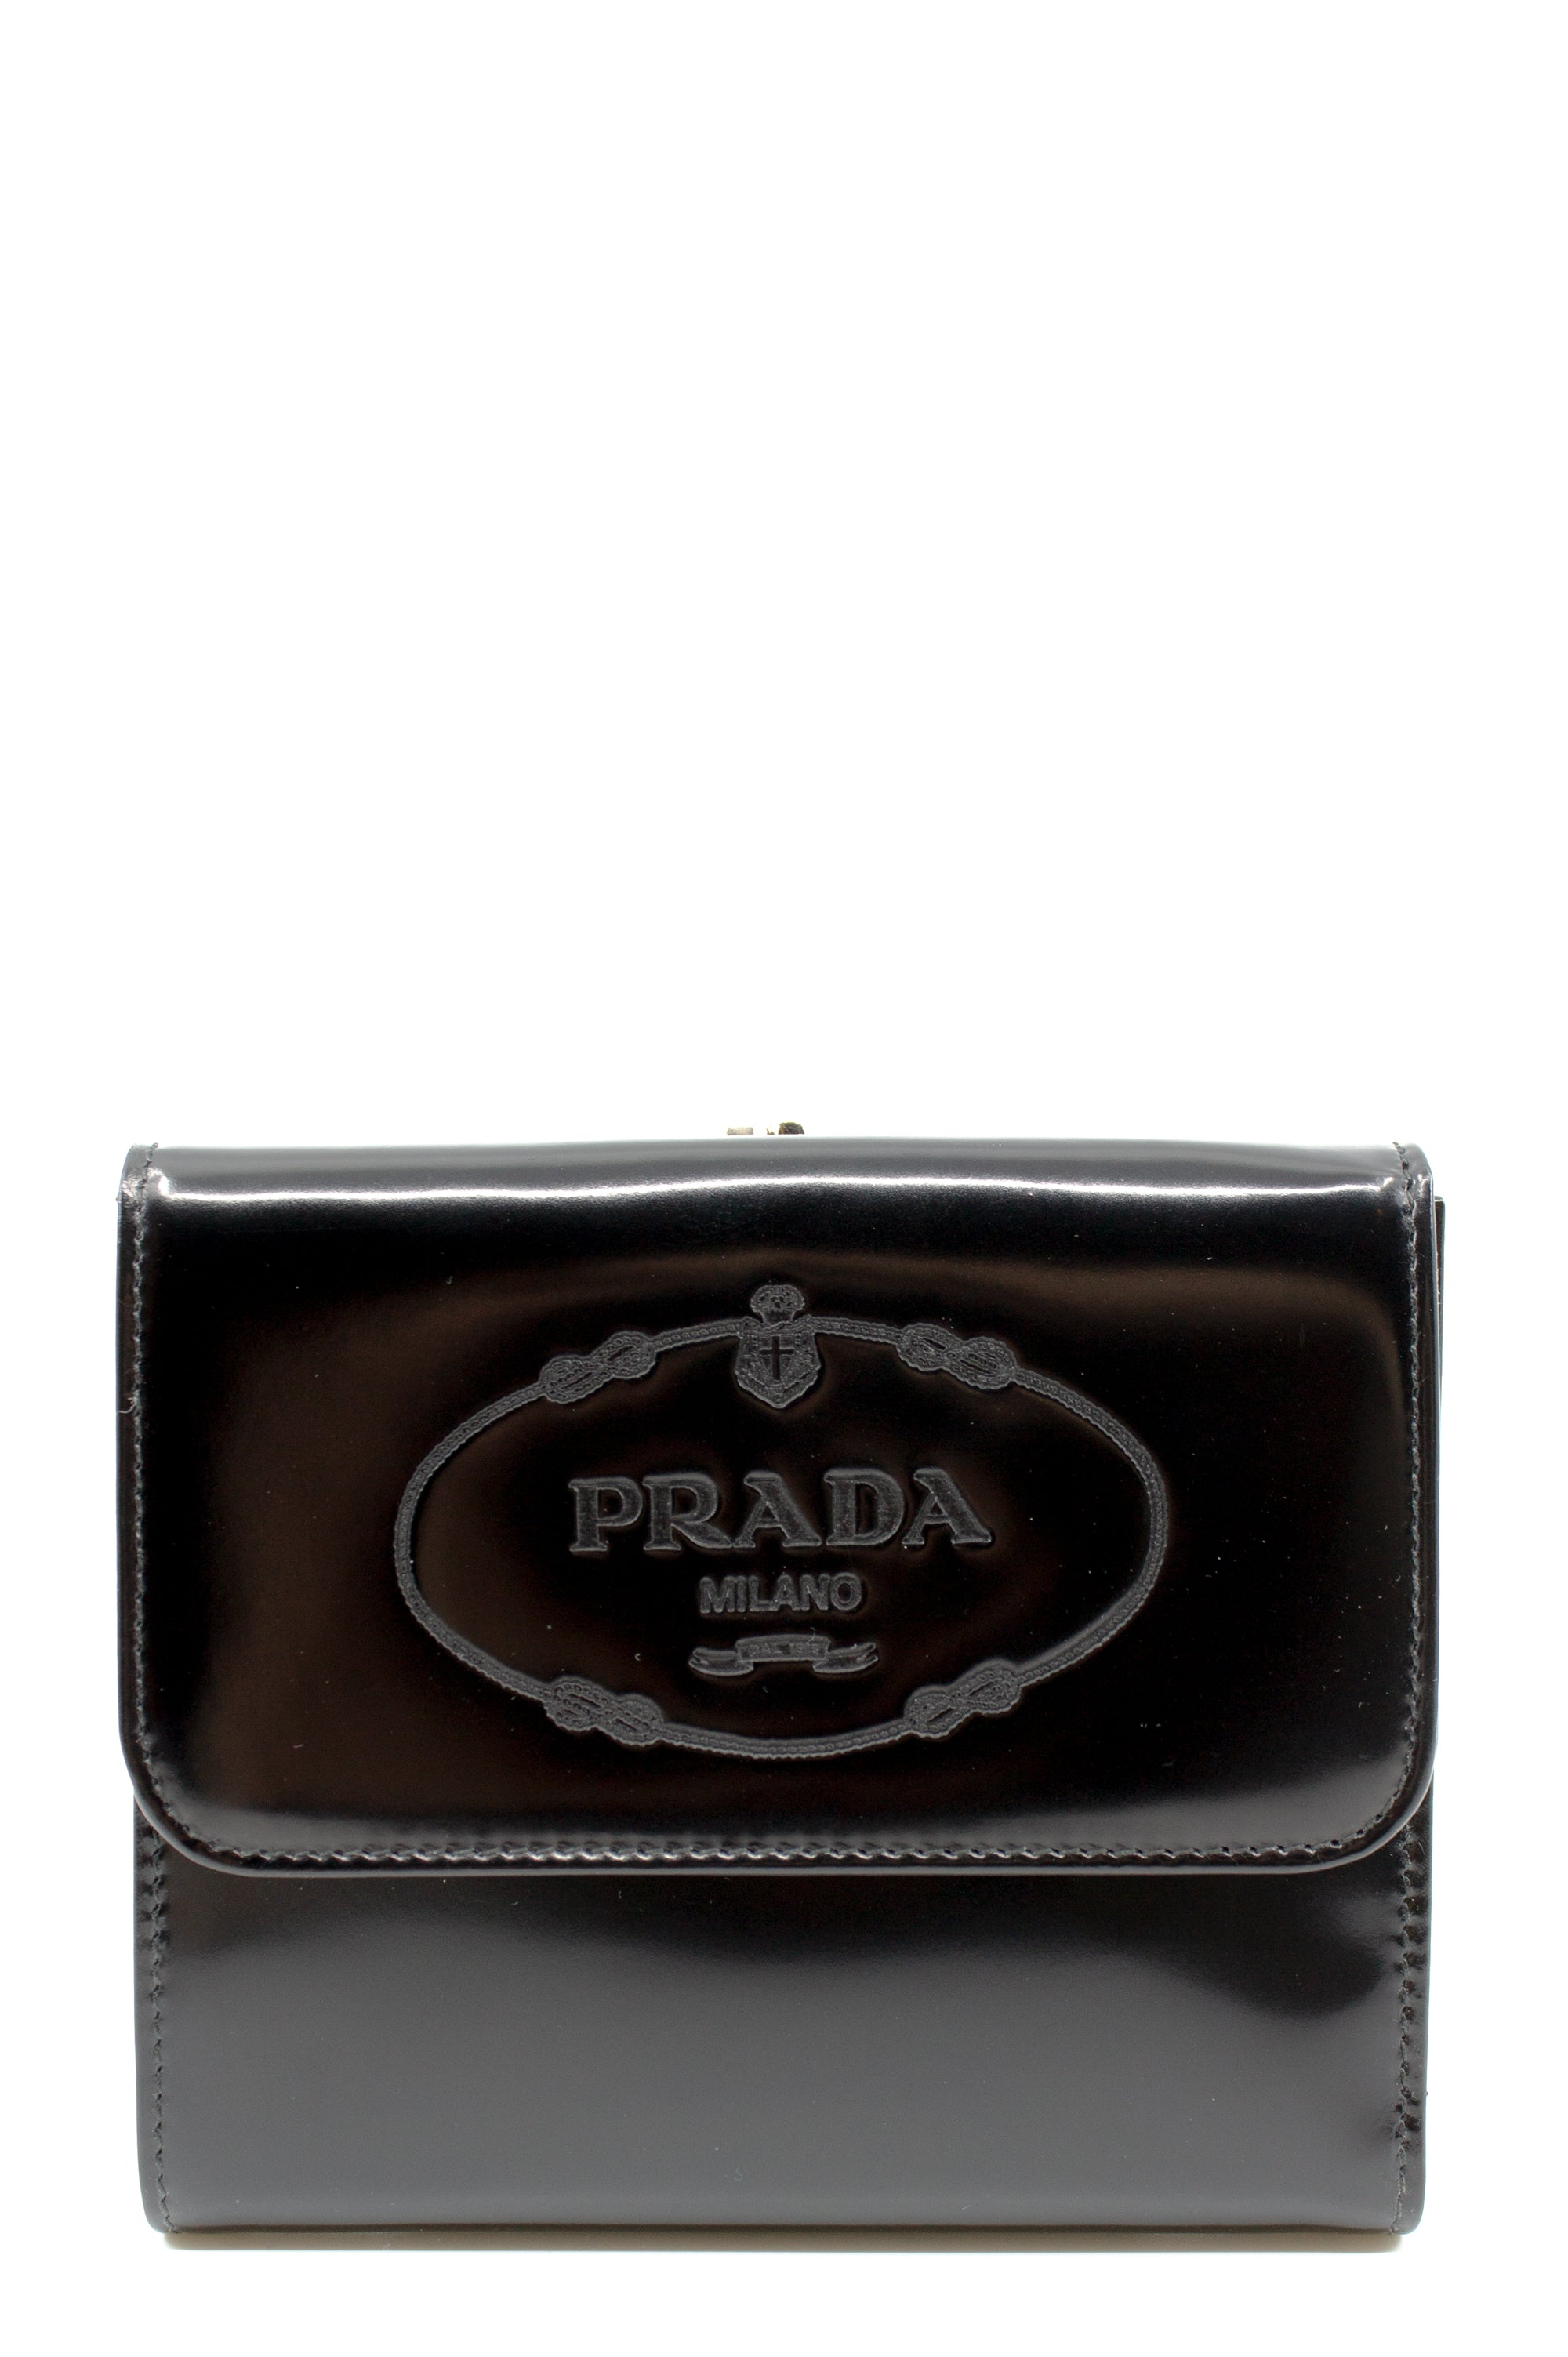 Prada Patent Leather Wallet Frontal Ansicht Schwarz